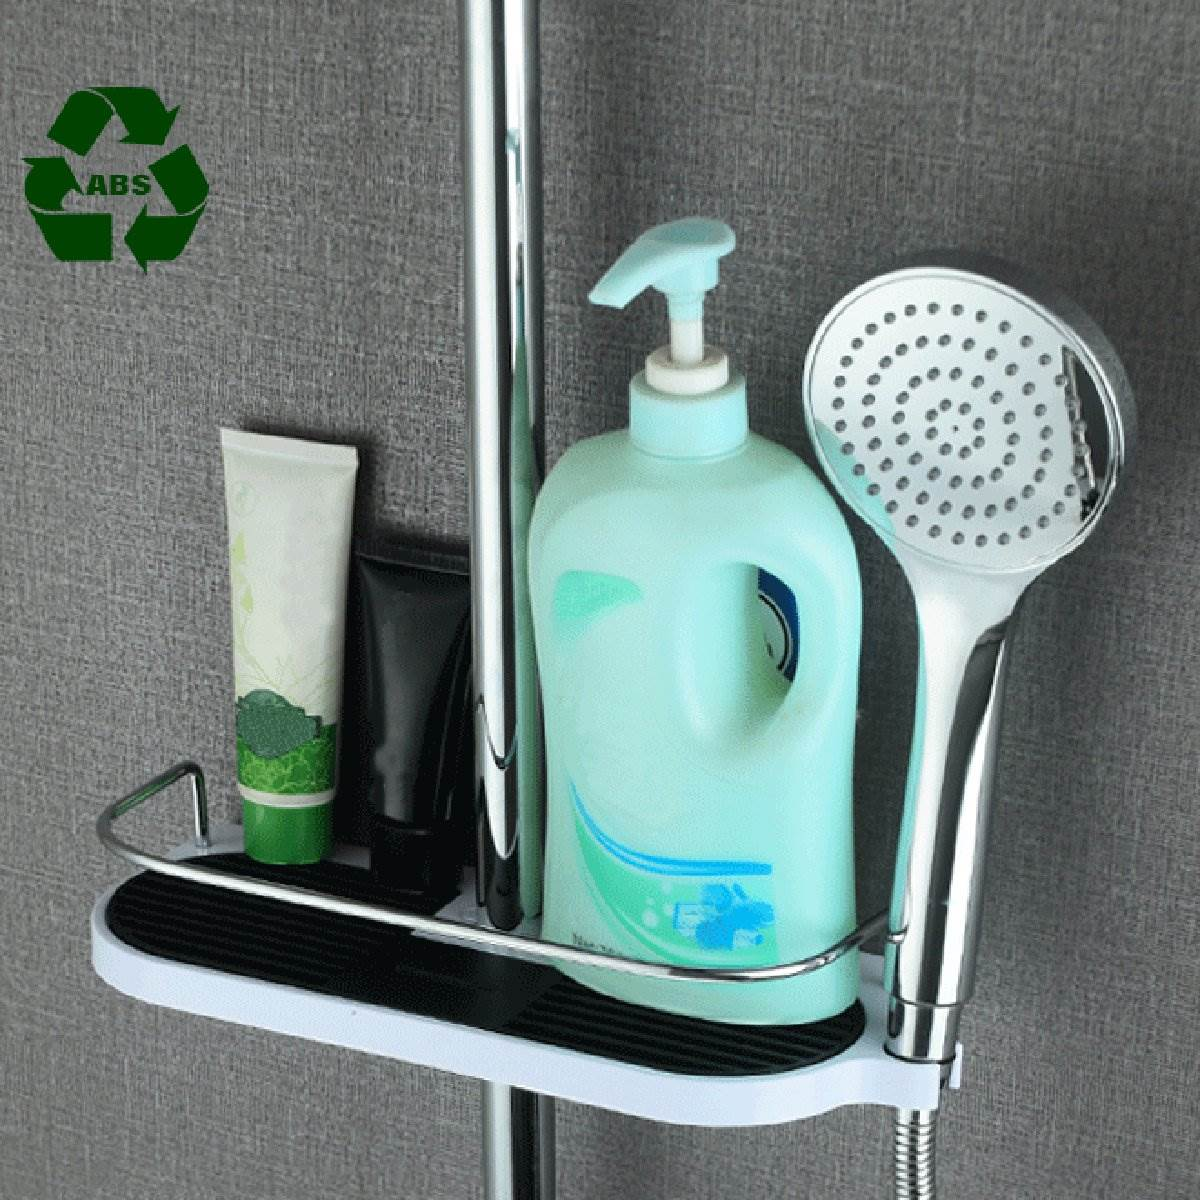 Aliexpress.com : Buy ABS Bathroom Shampoo holder for Show Shelf ...